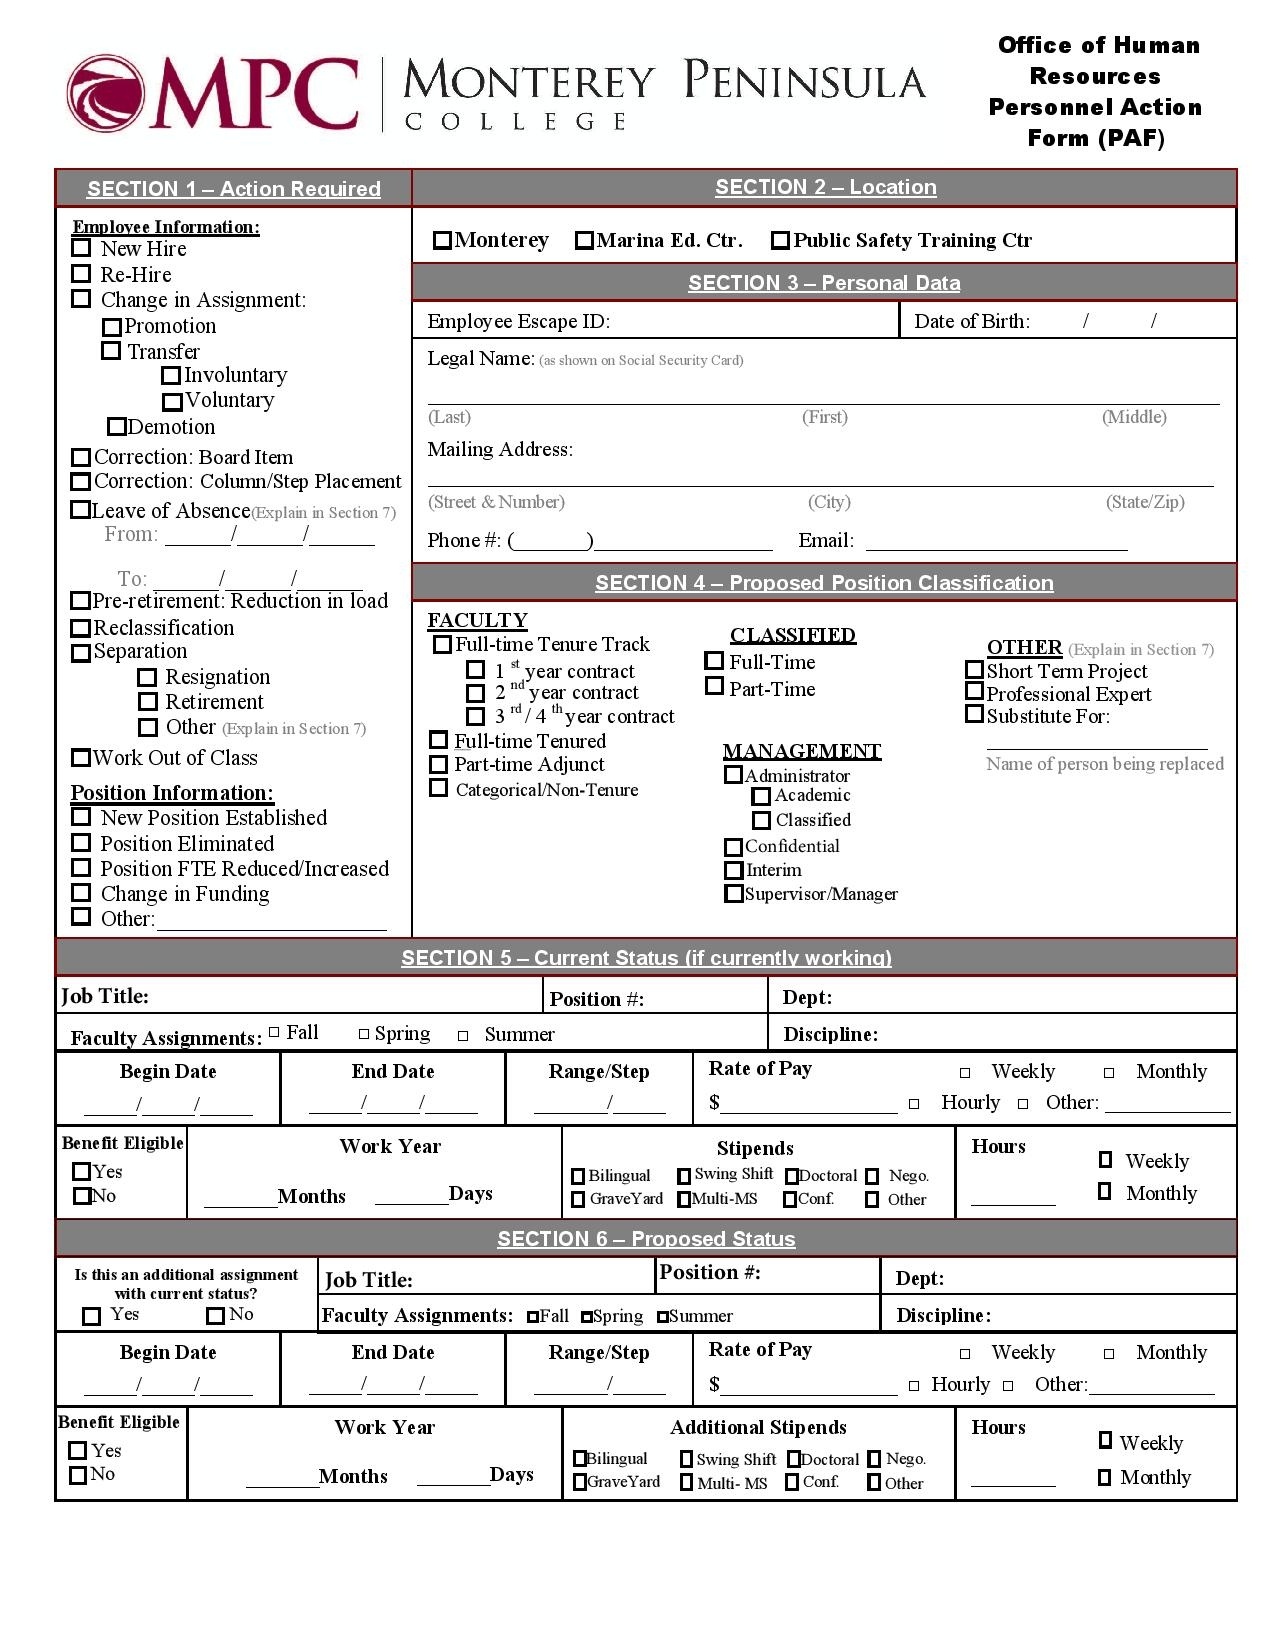 hr personnel action form page 0031